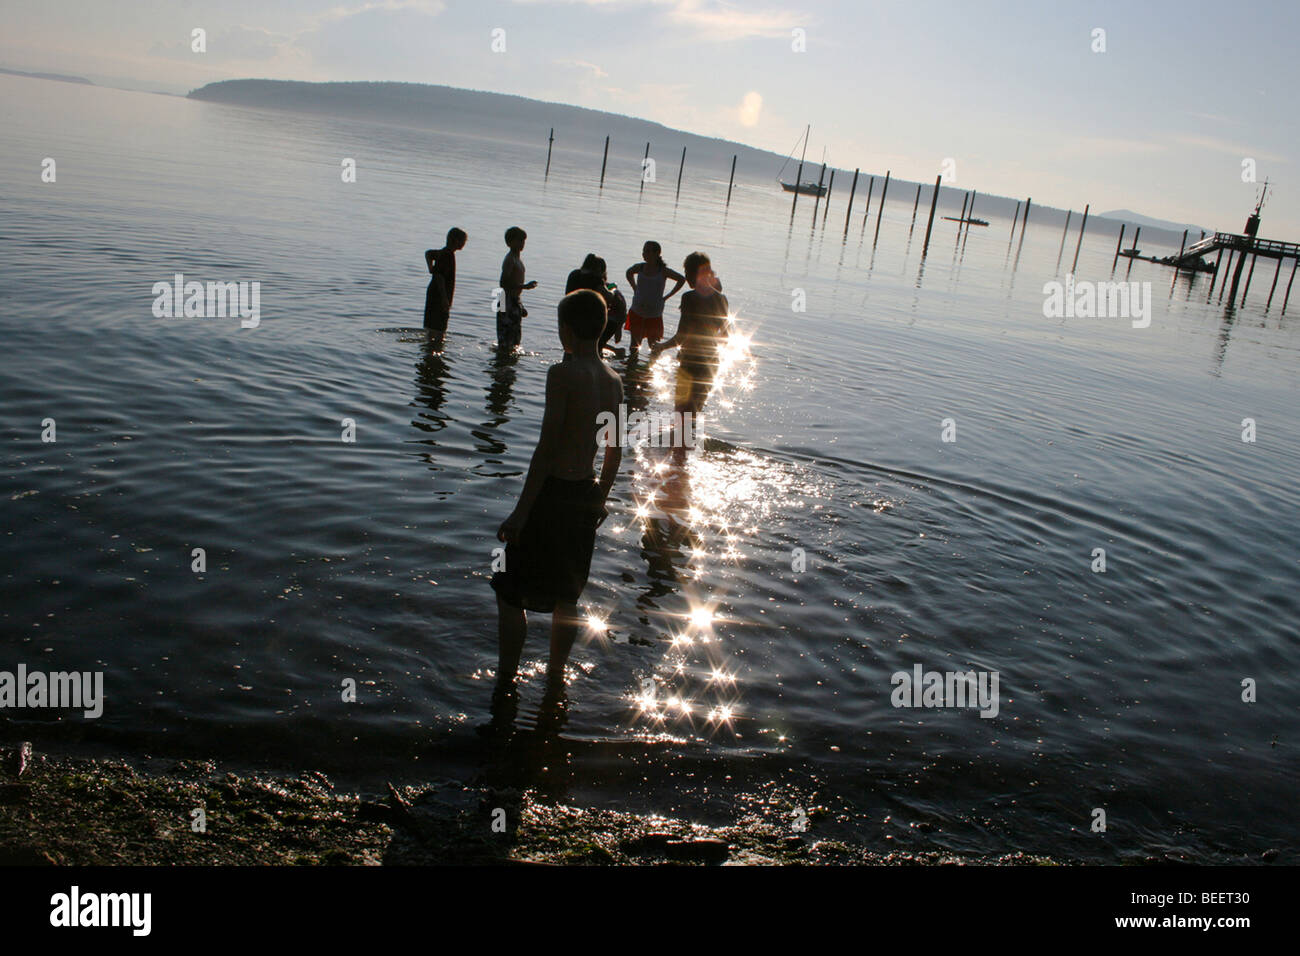 Kids on summer vacation wade into the water at sunset, Washington State, USA - Stock Image